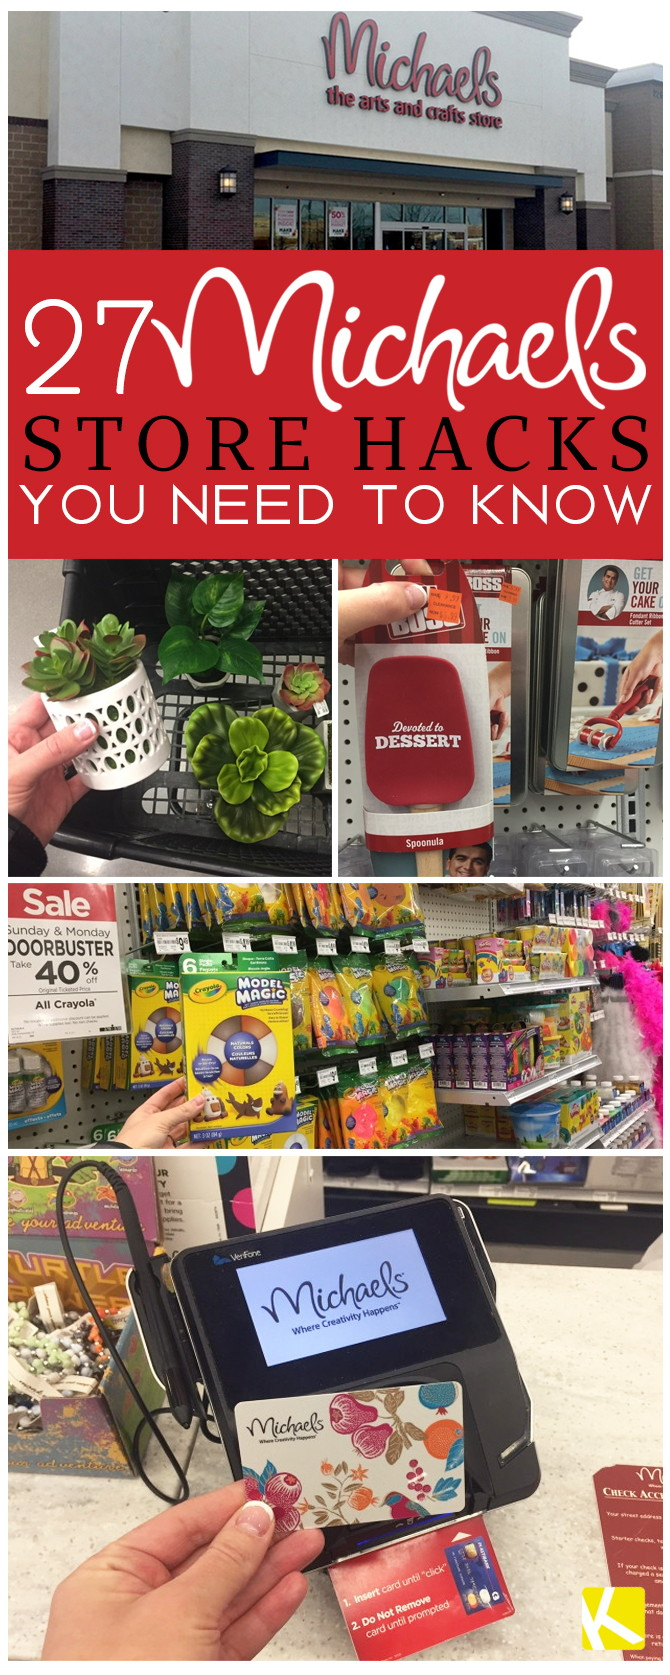 27 Michaels Store Hacks You Need to Know - The Krazy Coupon Lady